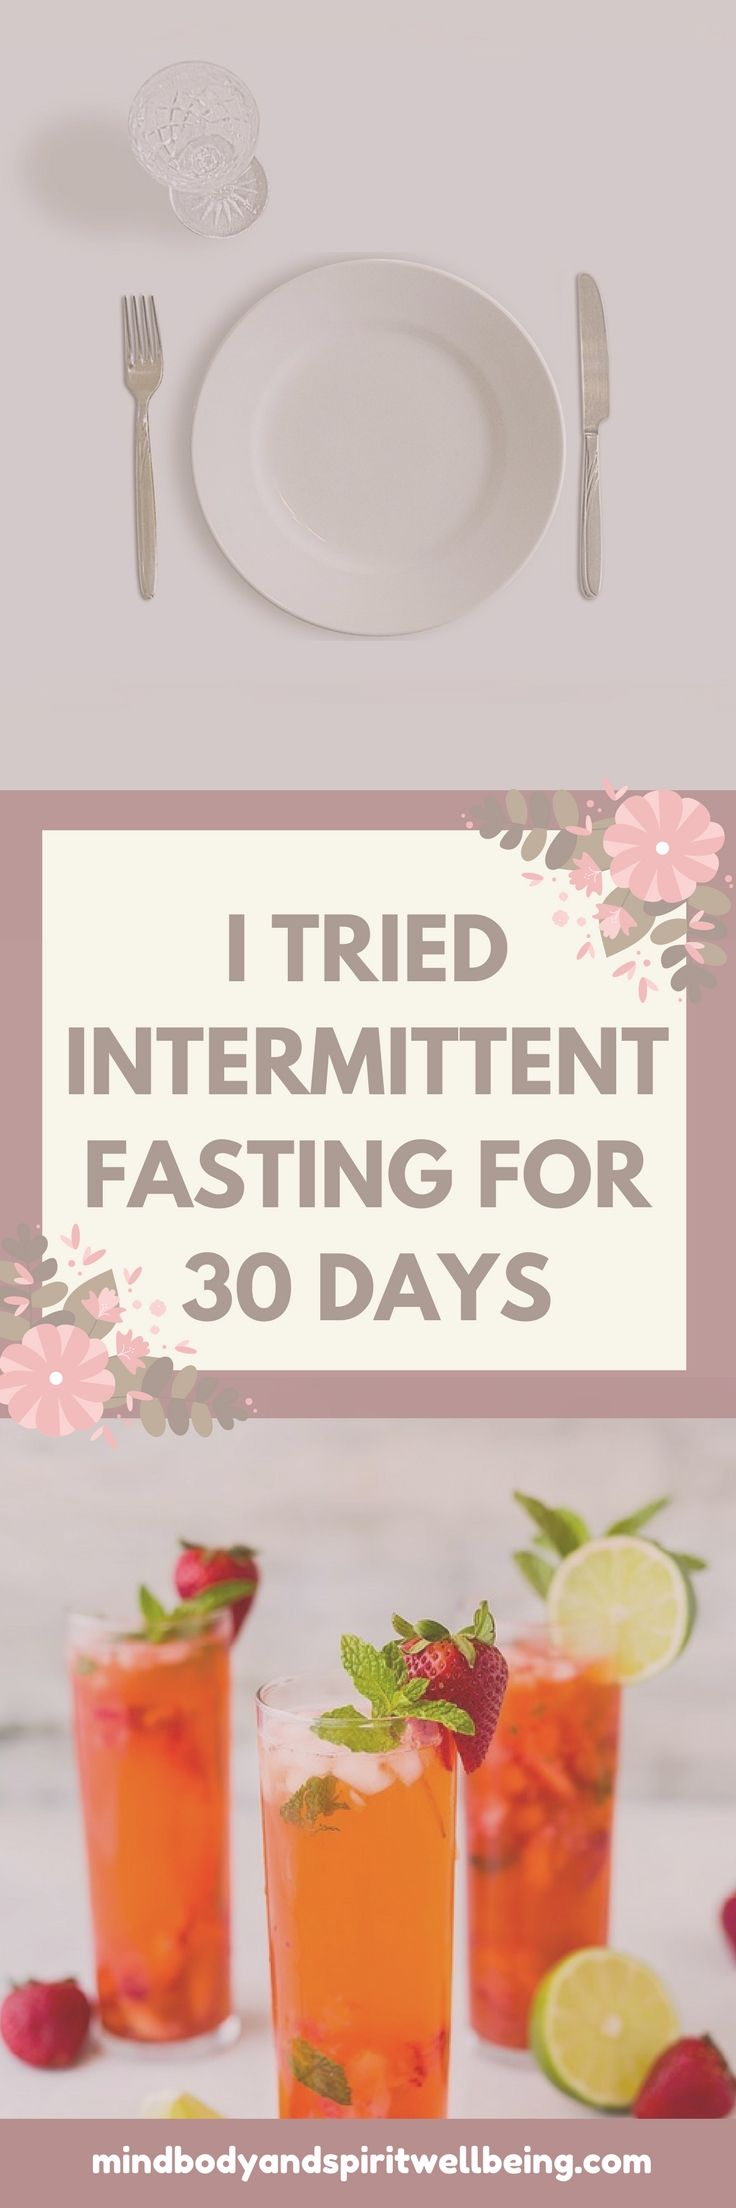 6 Things That Happened When I Tried Intermittent Fasting for a Week foto